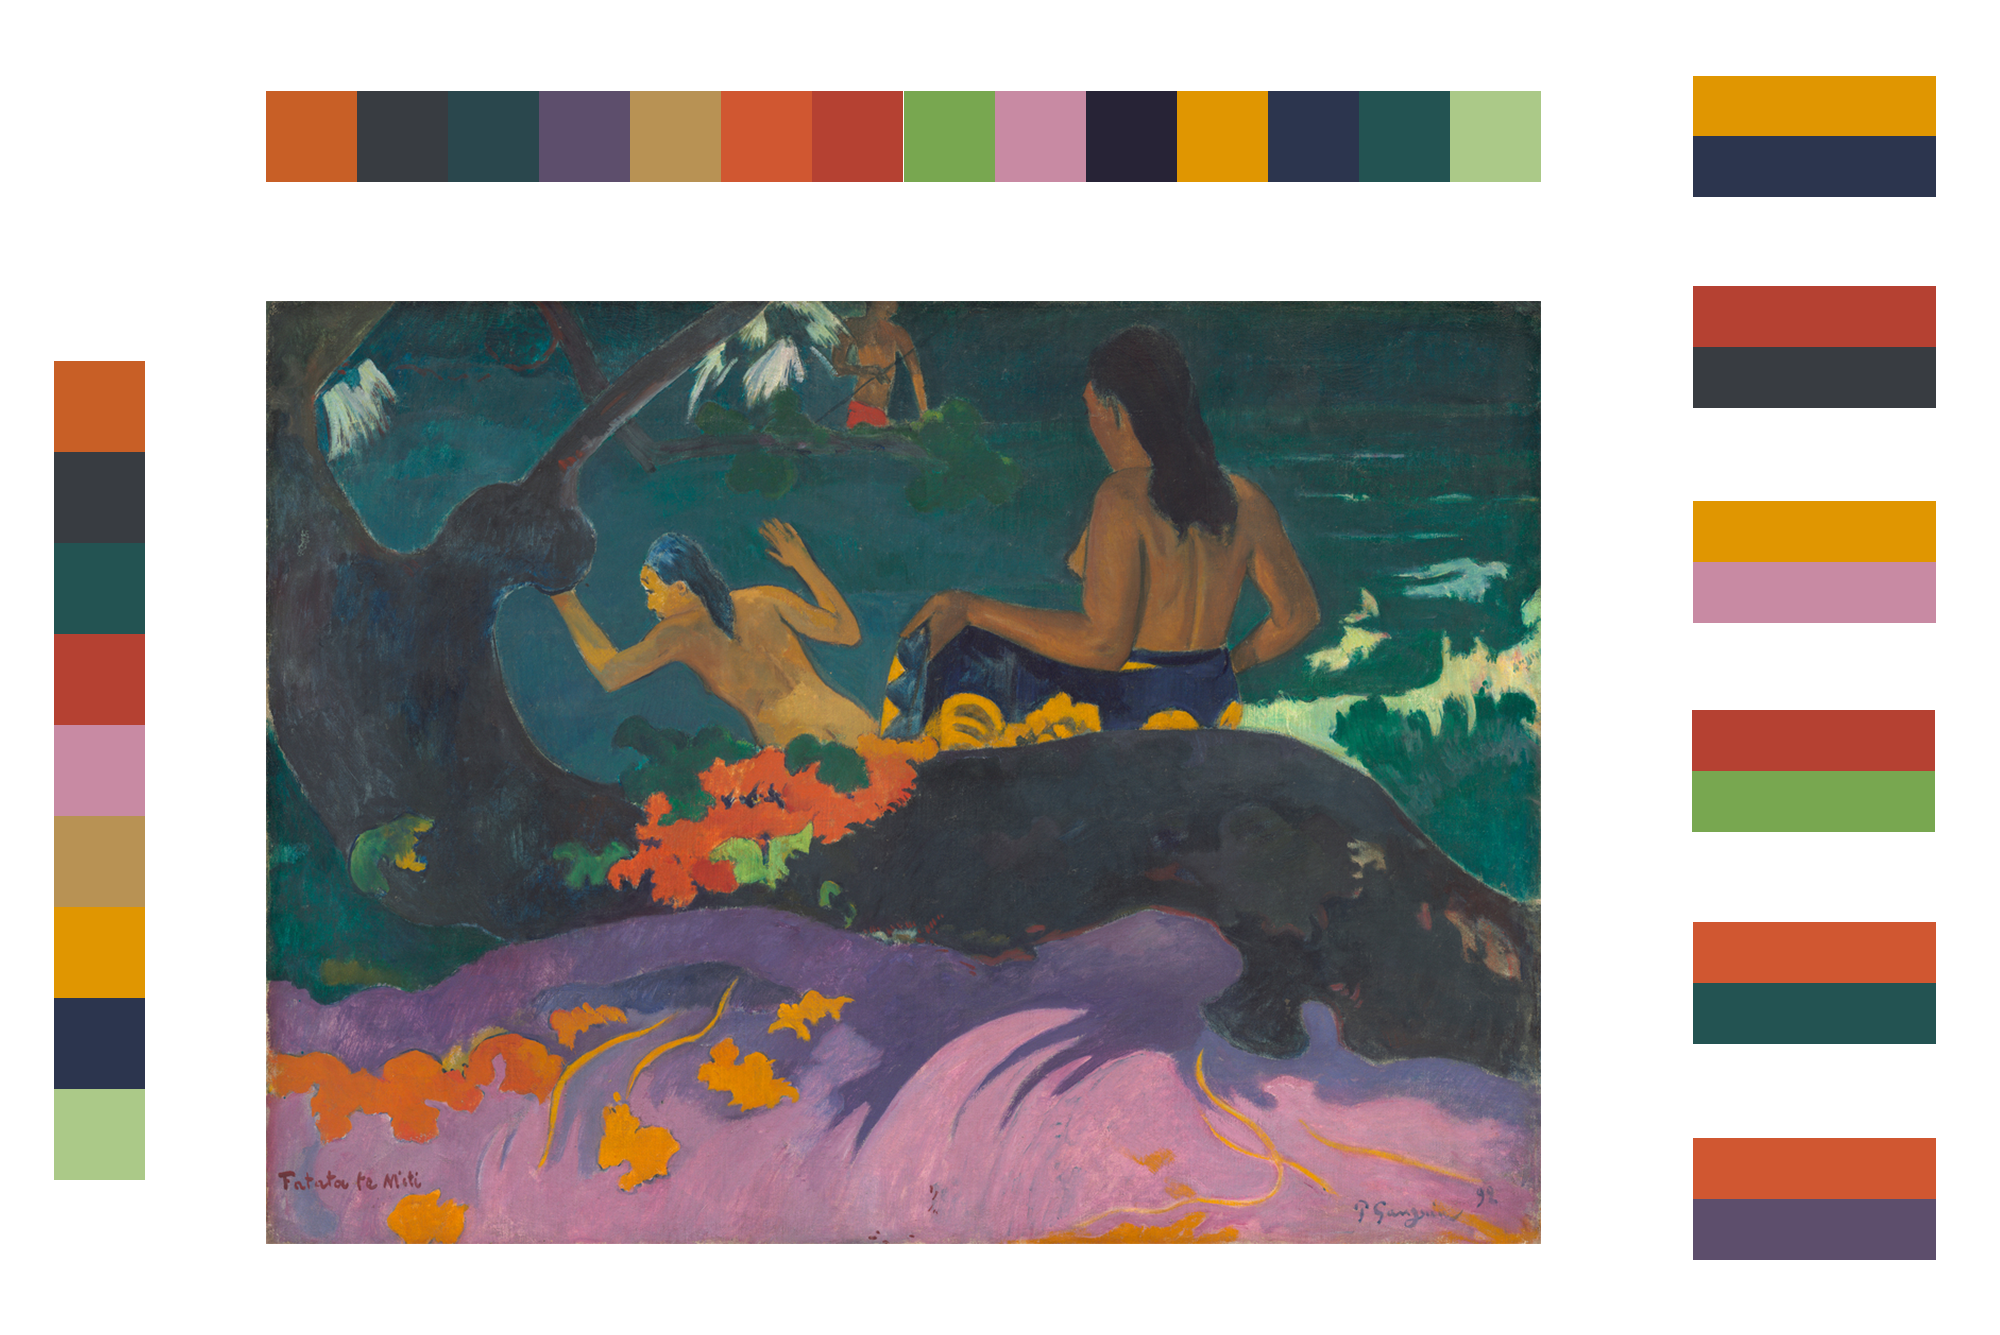 P aul Gauguin painting, Fatata te Miti (By the Sea), with color samples and adjacencies extracted from the painting.